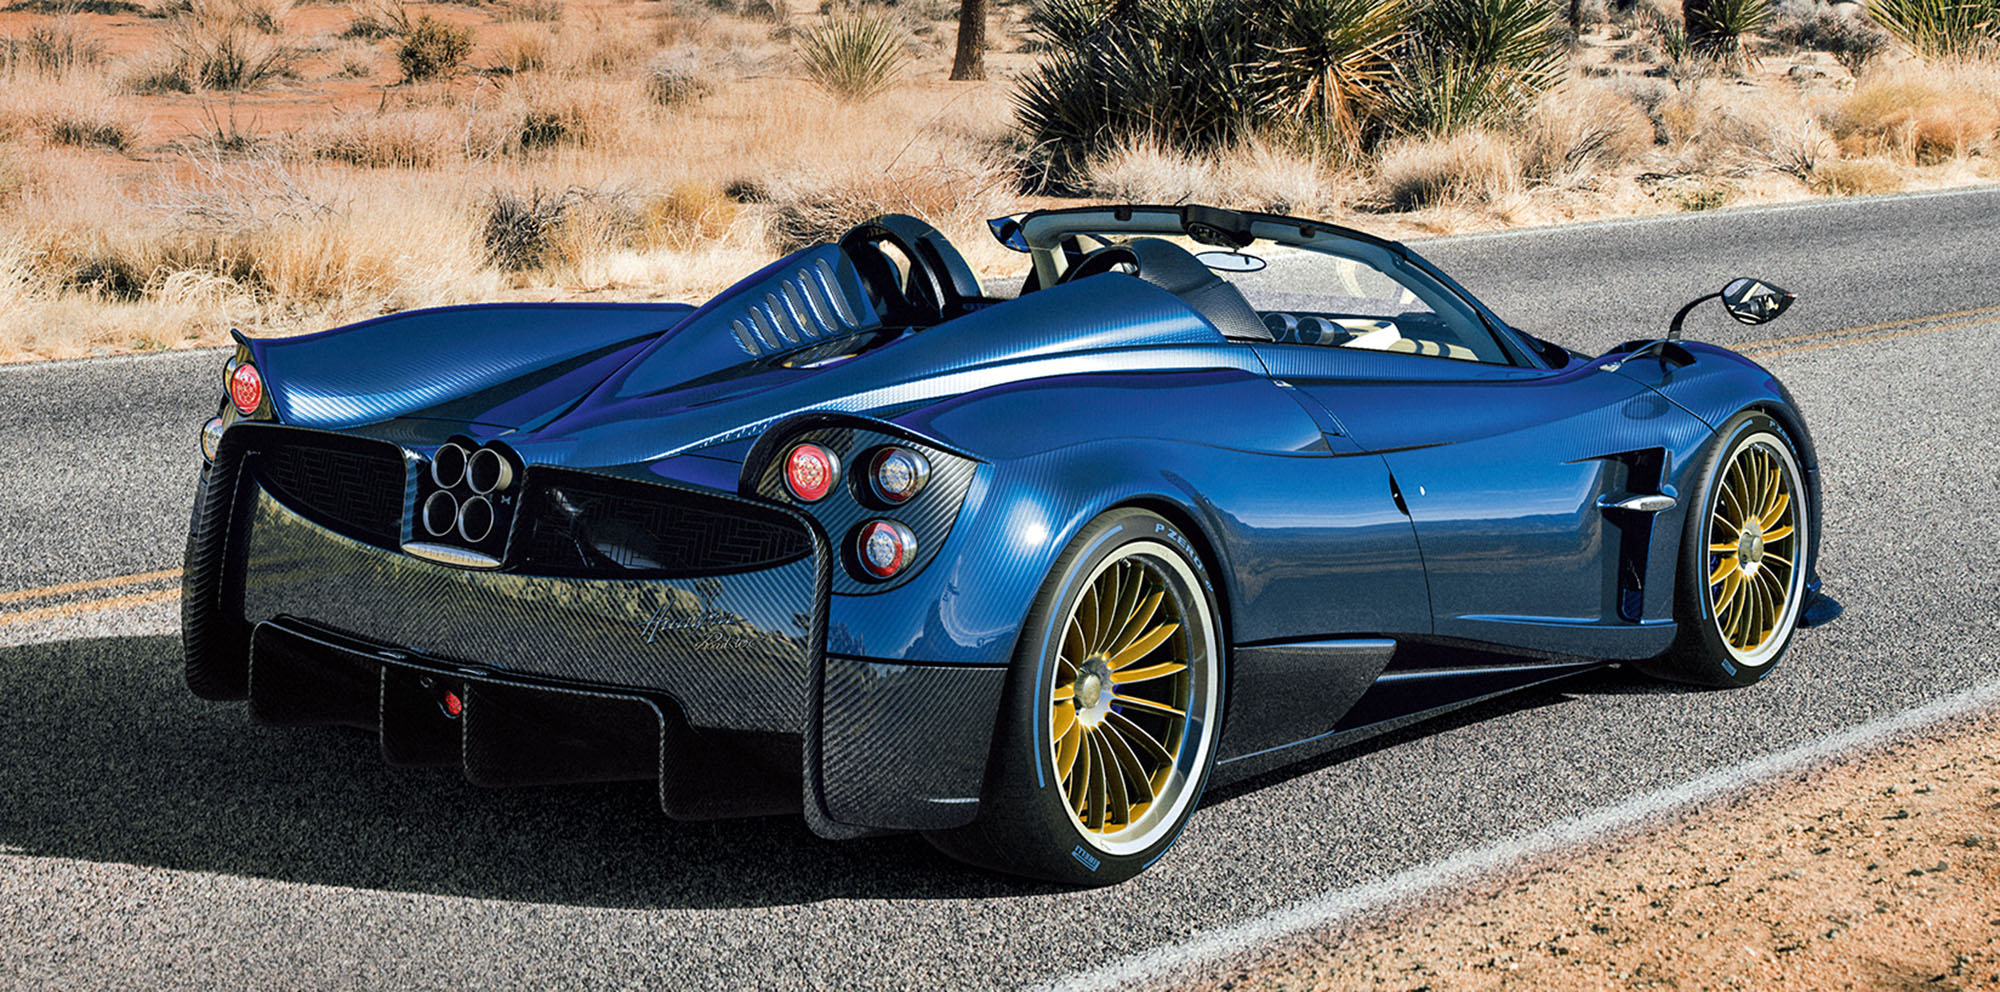 Pagani Huayra Price >> 2017 Pagani Huayra Roadster unveiled - Photos (1 of 10)